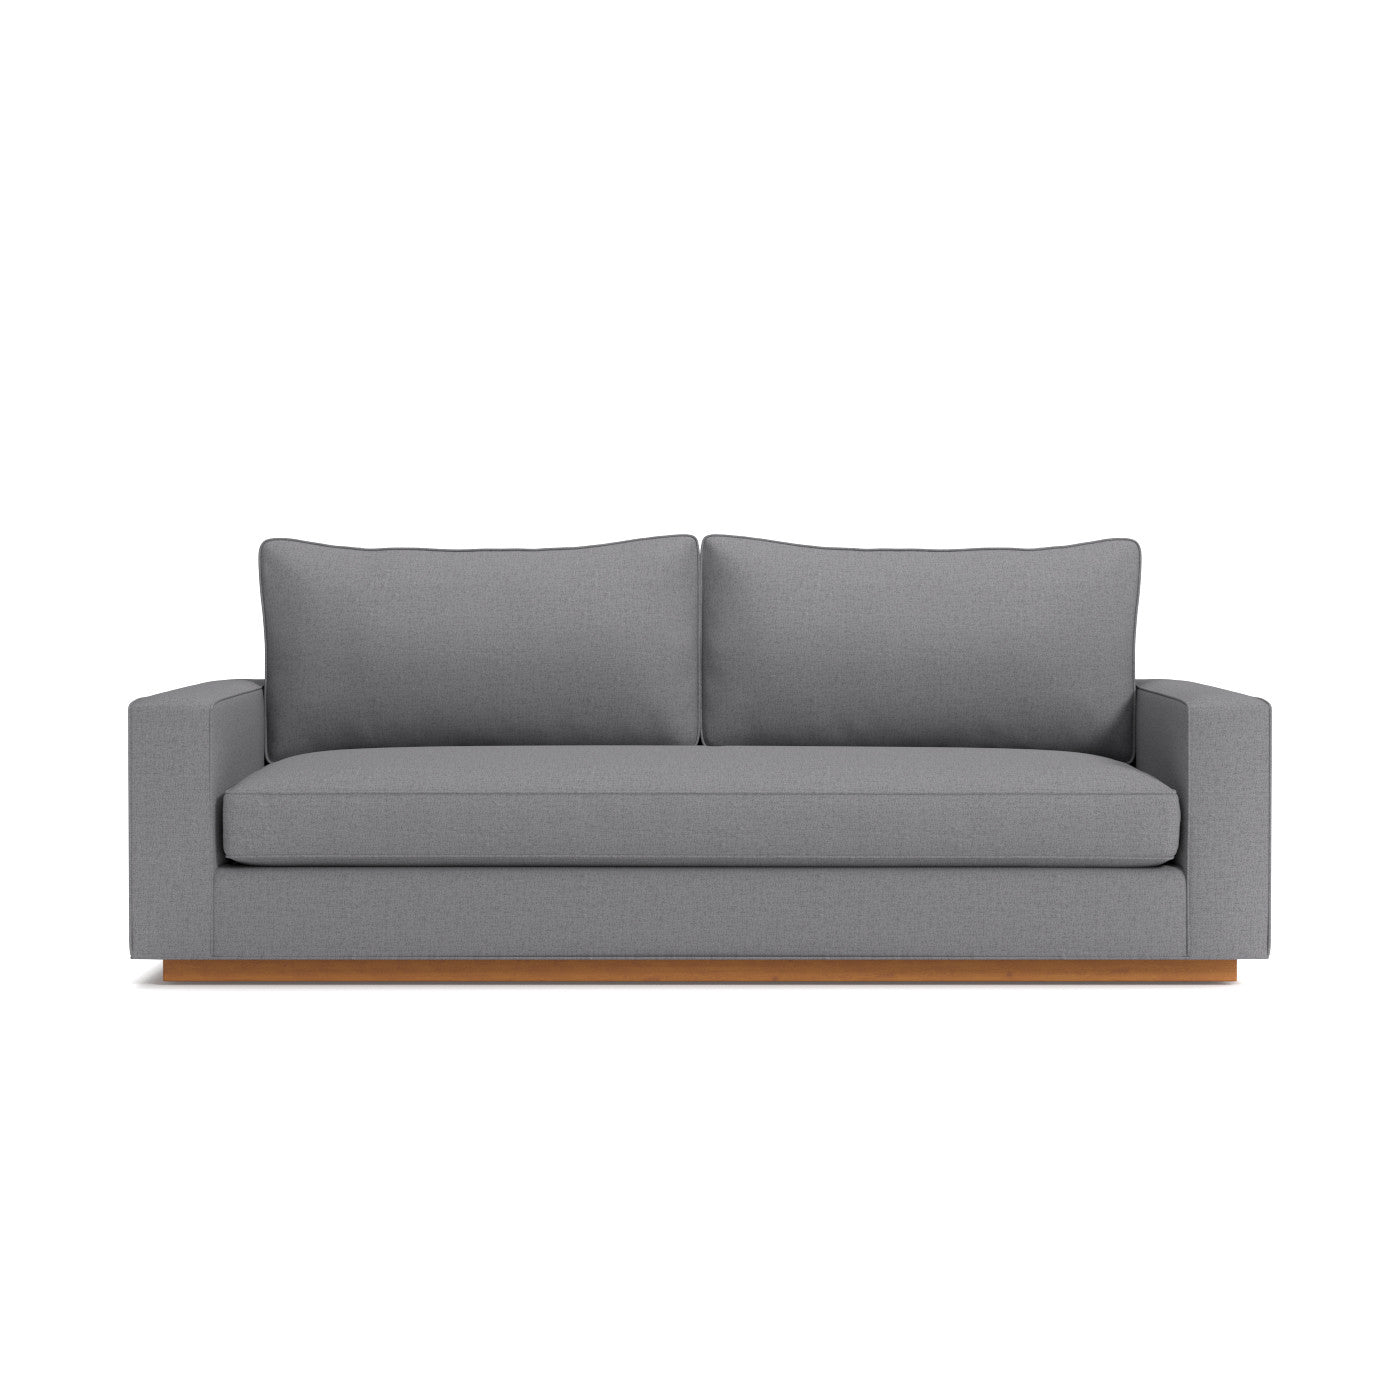 Harper Sofa by Kyle Schuneman CHOICE OF FABRICS